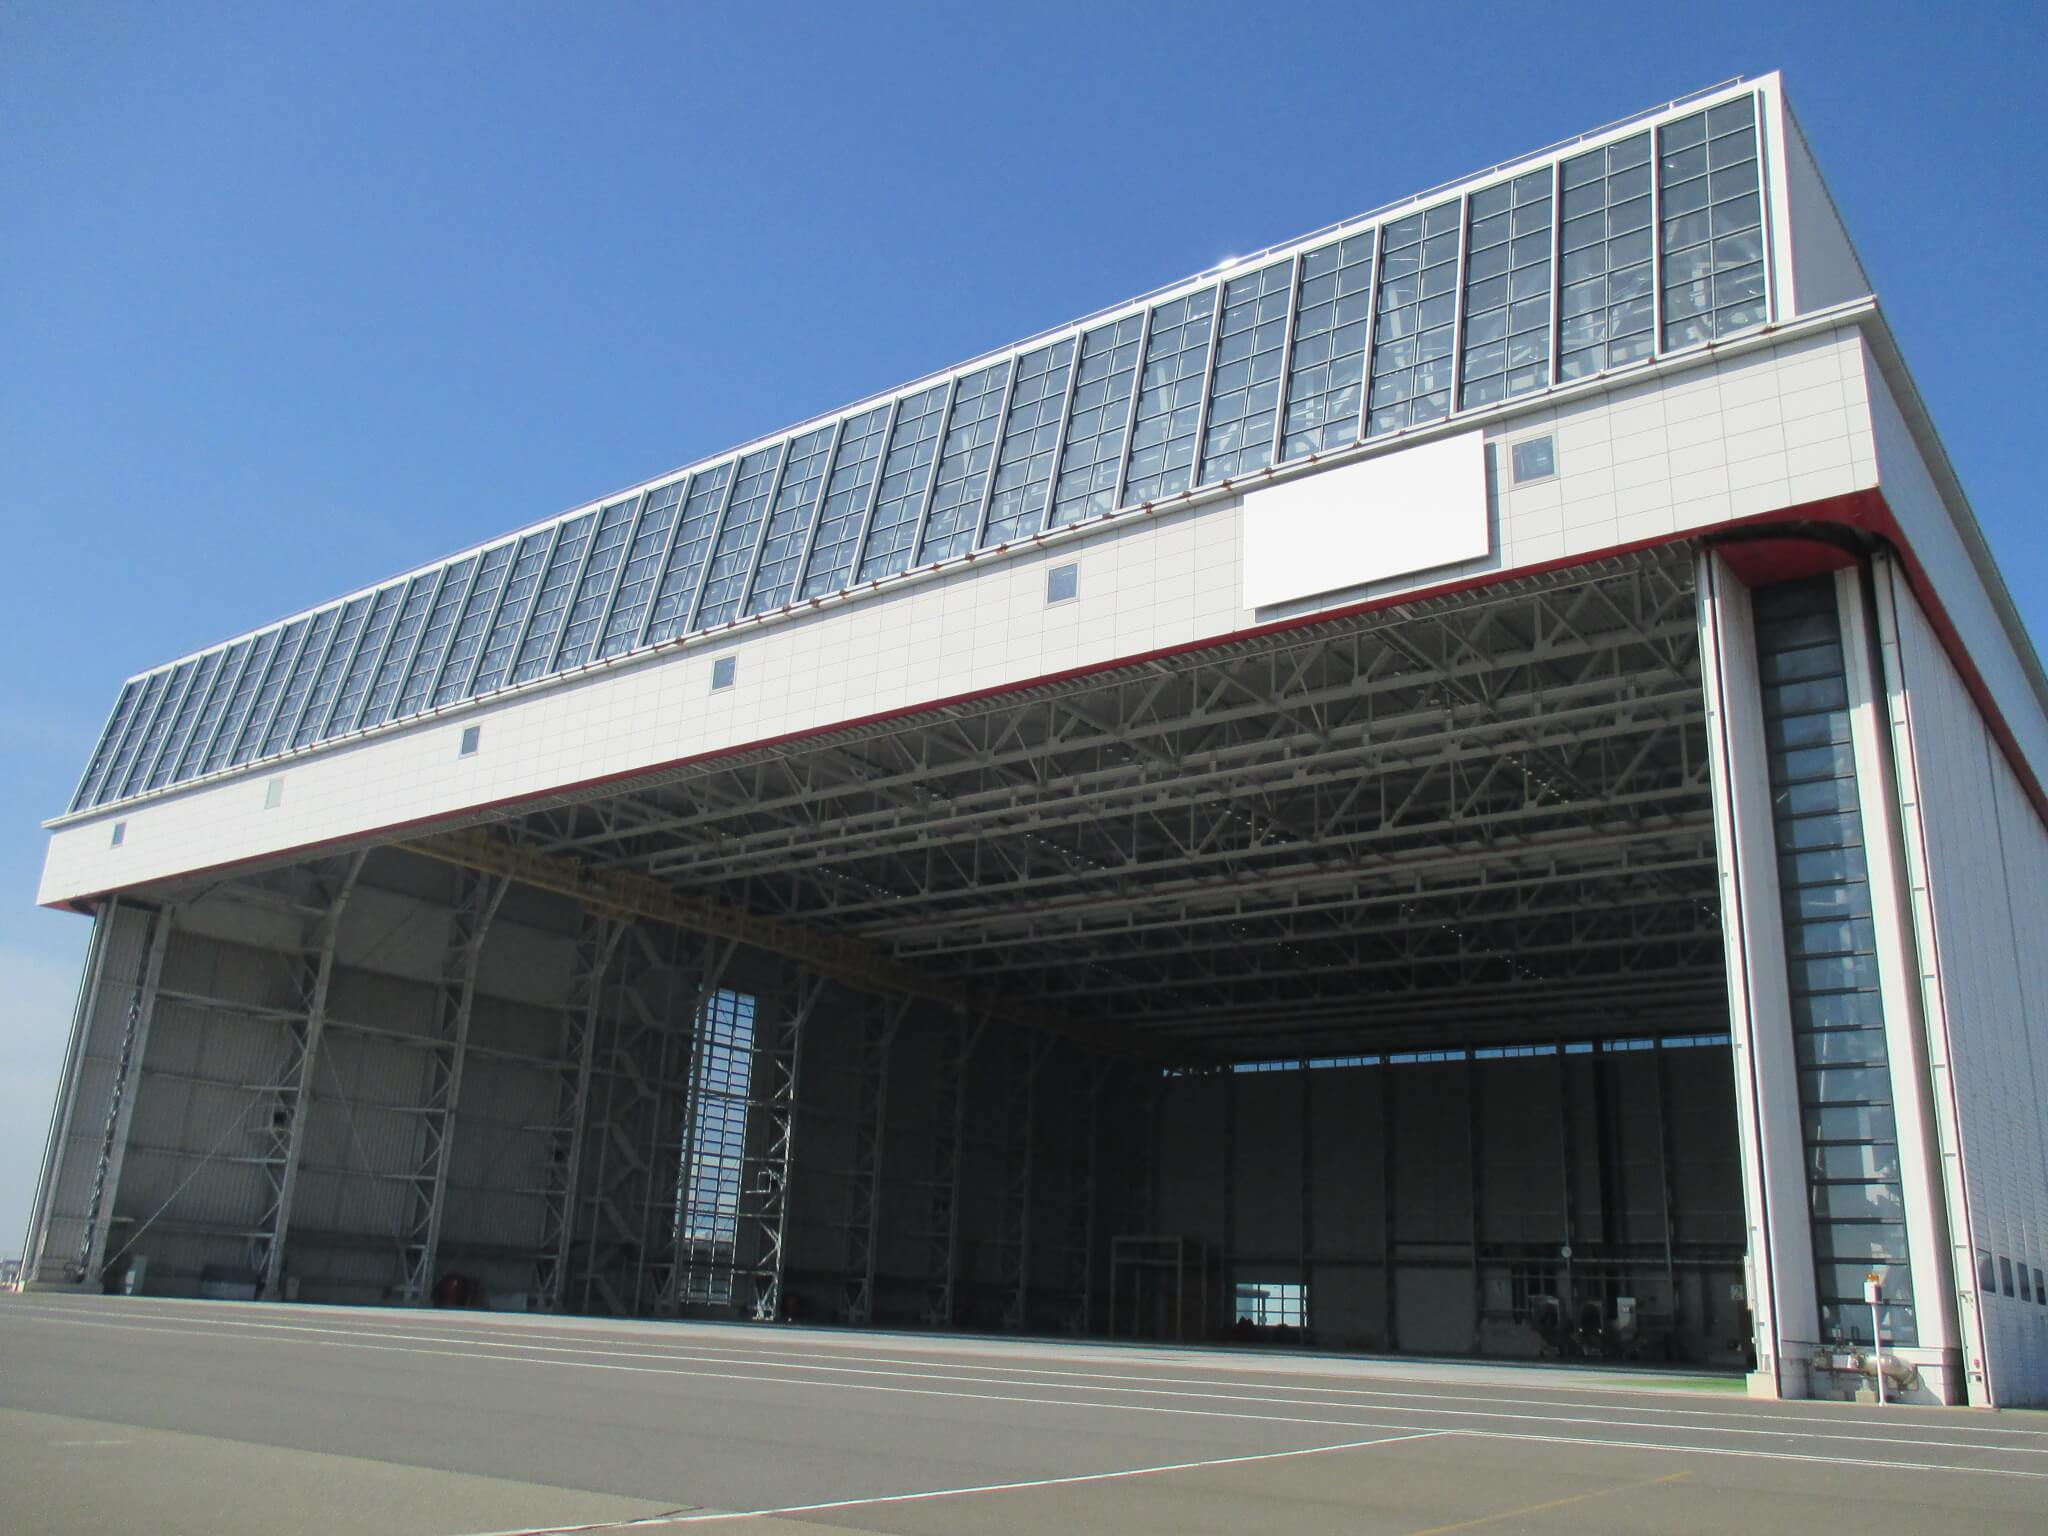 Kansai International Airport Hangar